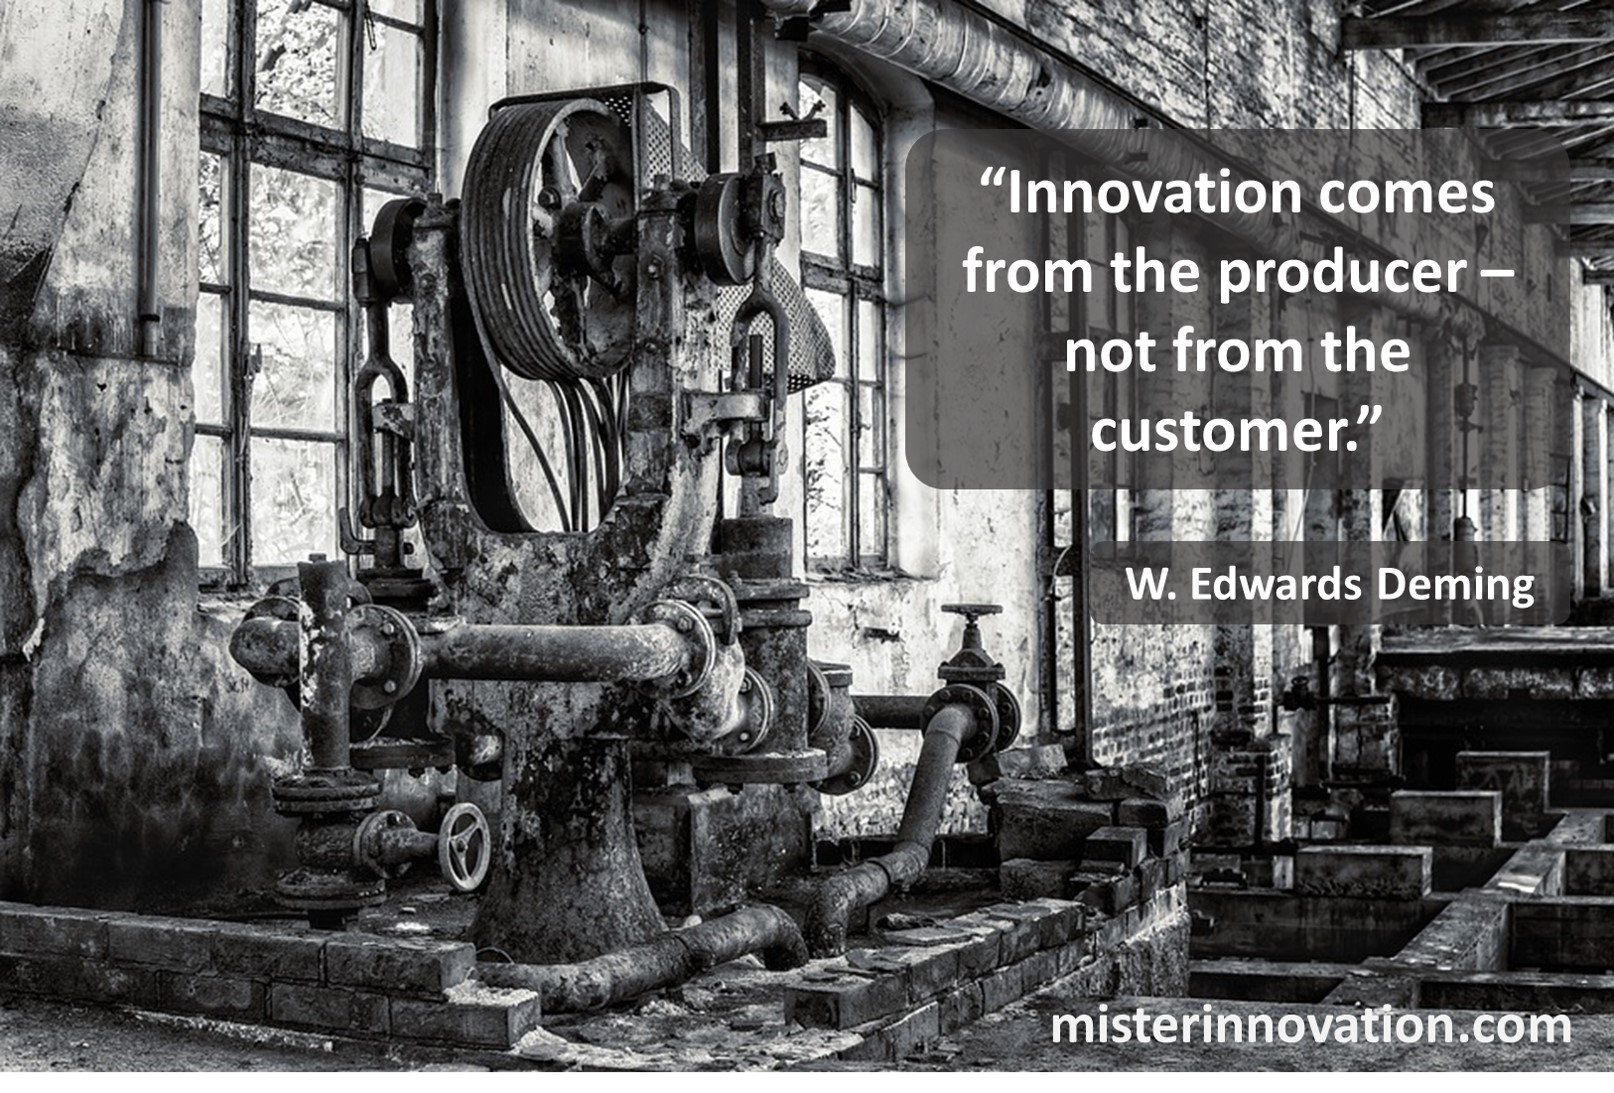 W Edwards Deming Quote on Innovation from Producer Not Customer